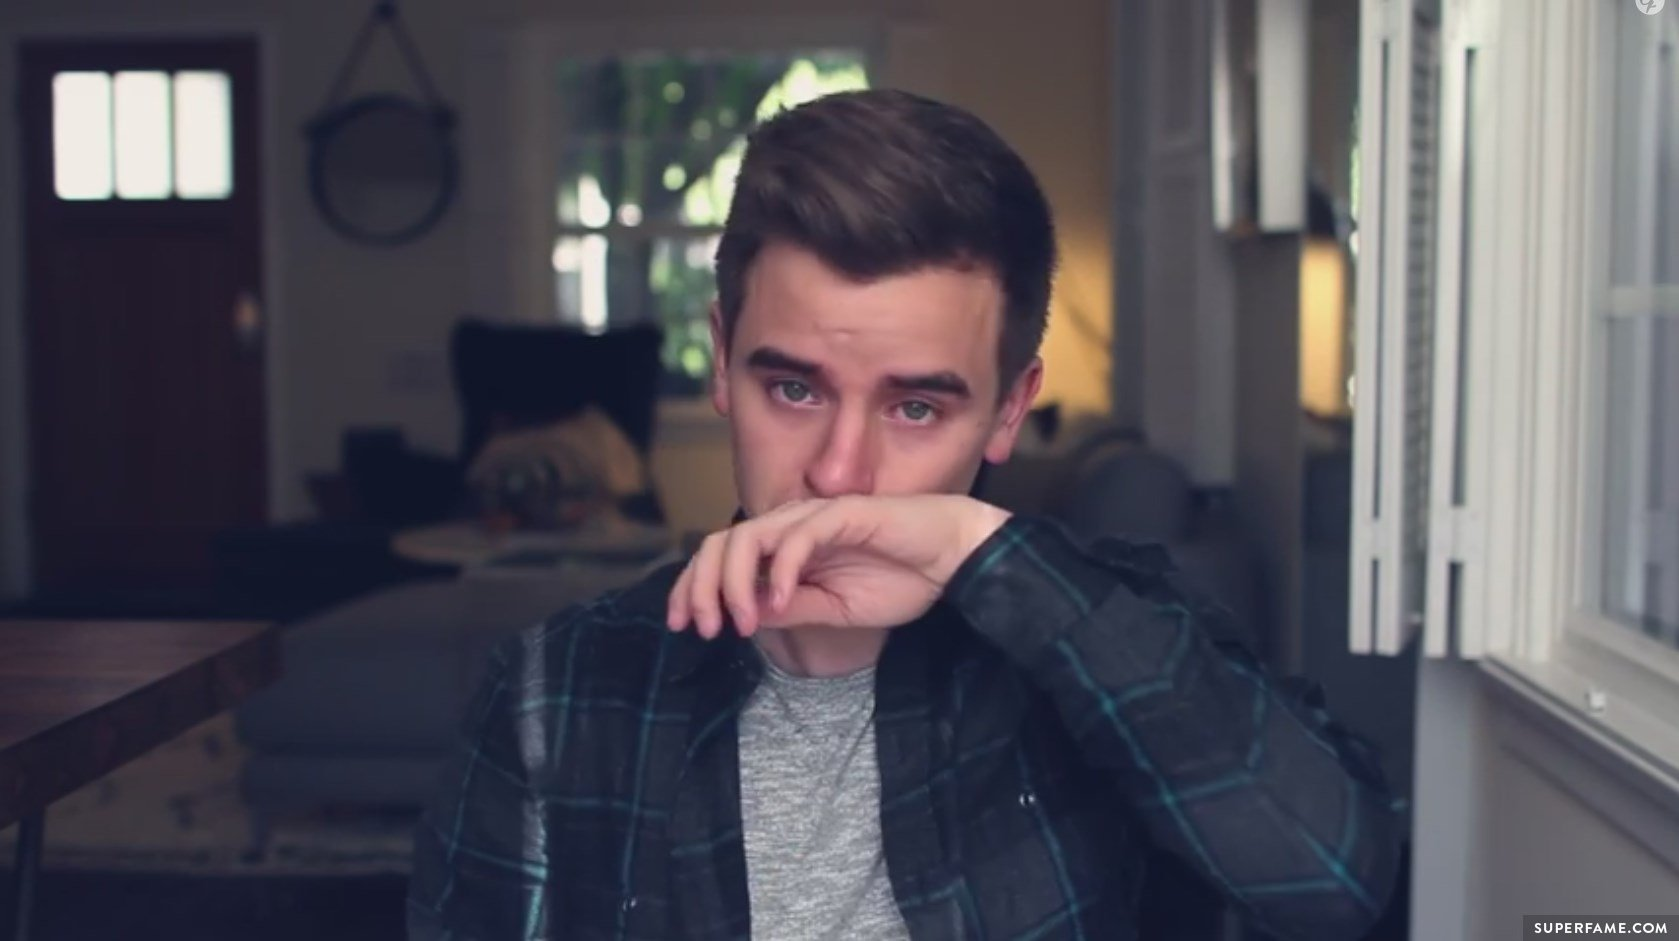 O2l Connor Franta YouTubers React to Con...